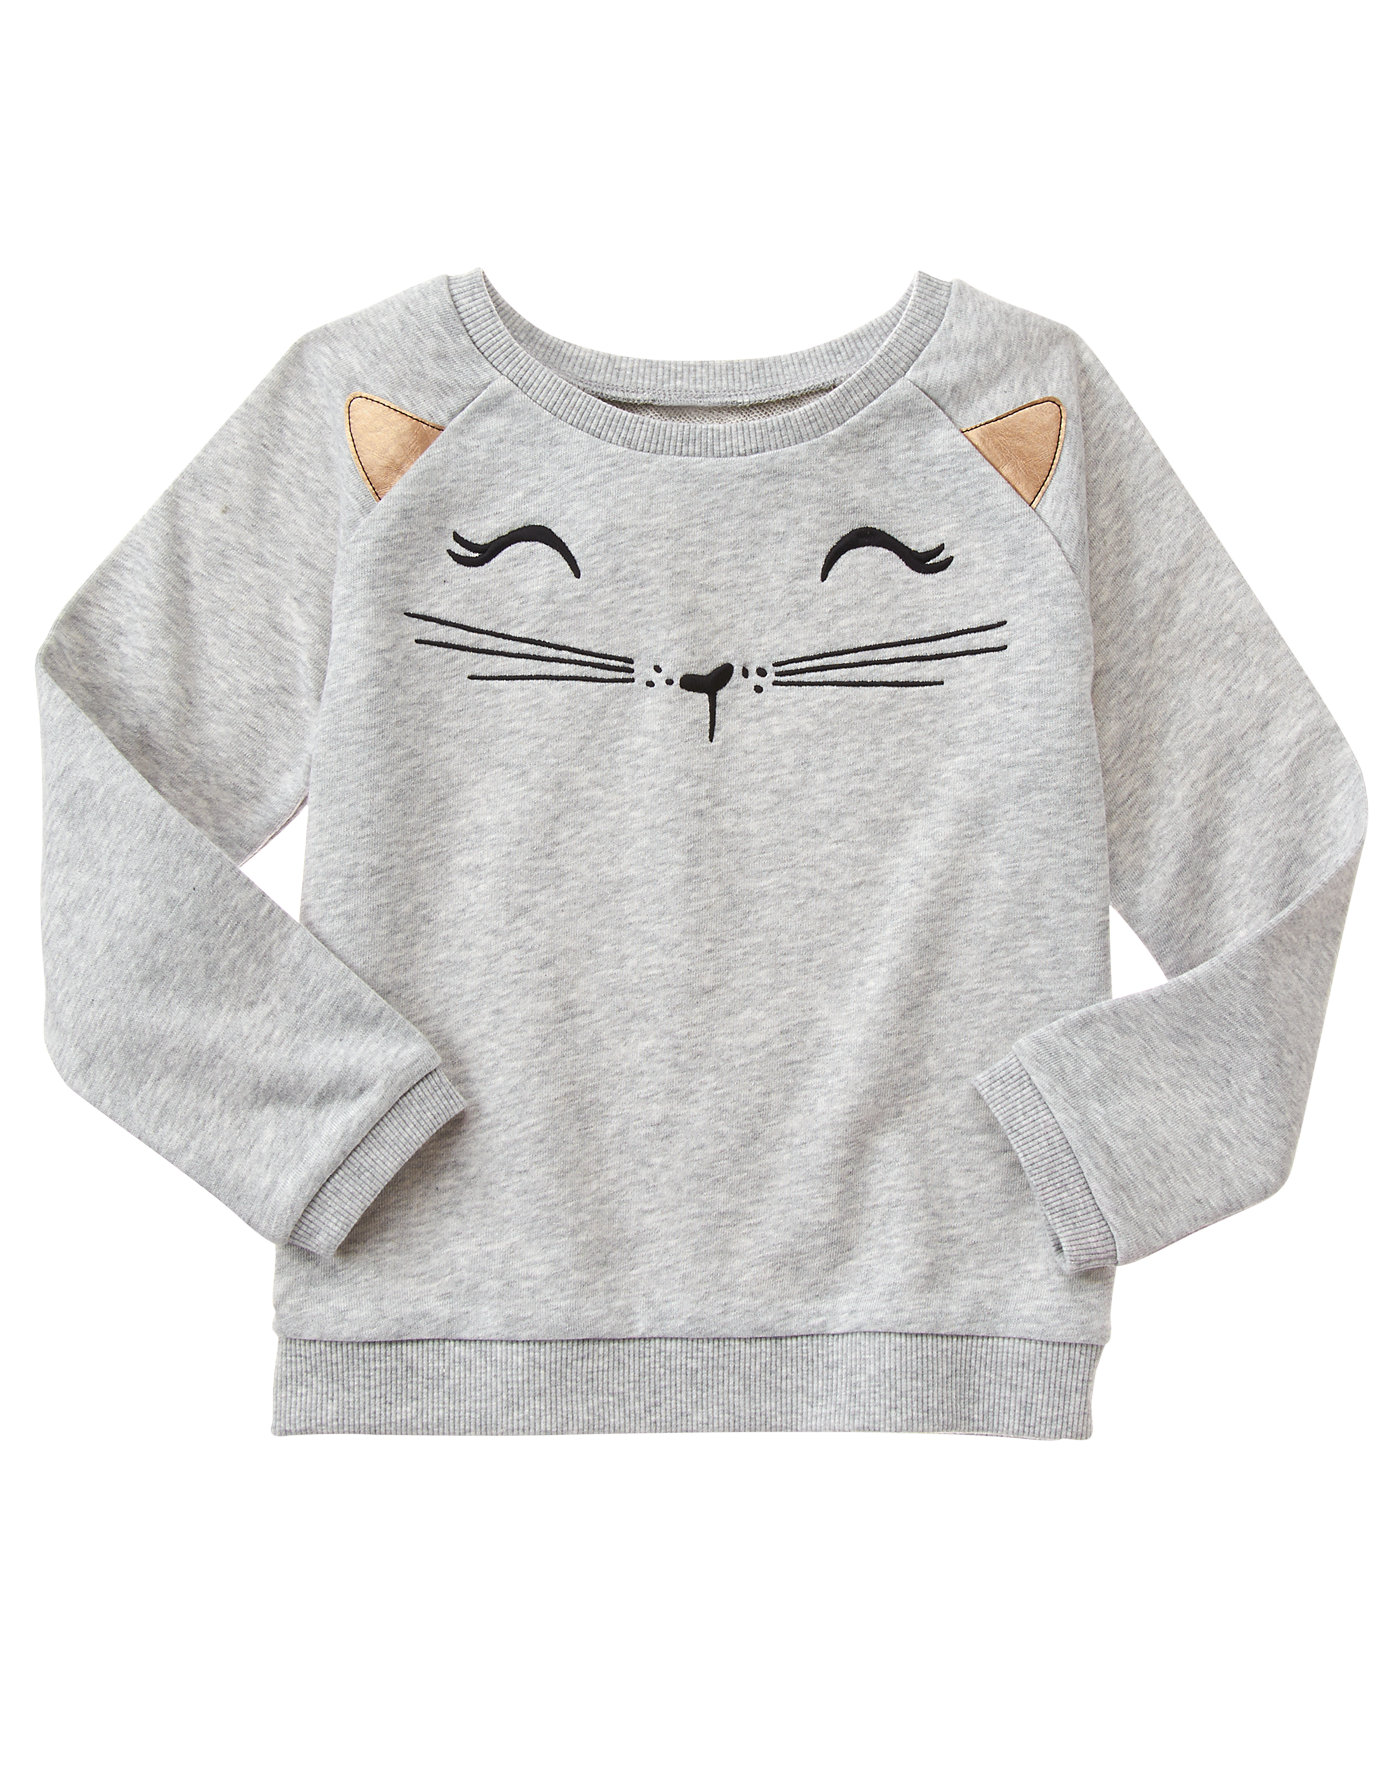 Spooky and Sparkly Halloween Looks for Girls from Gymboree